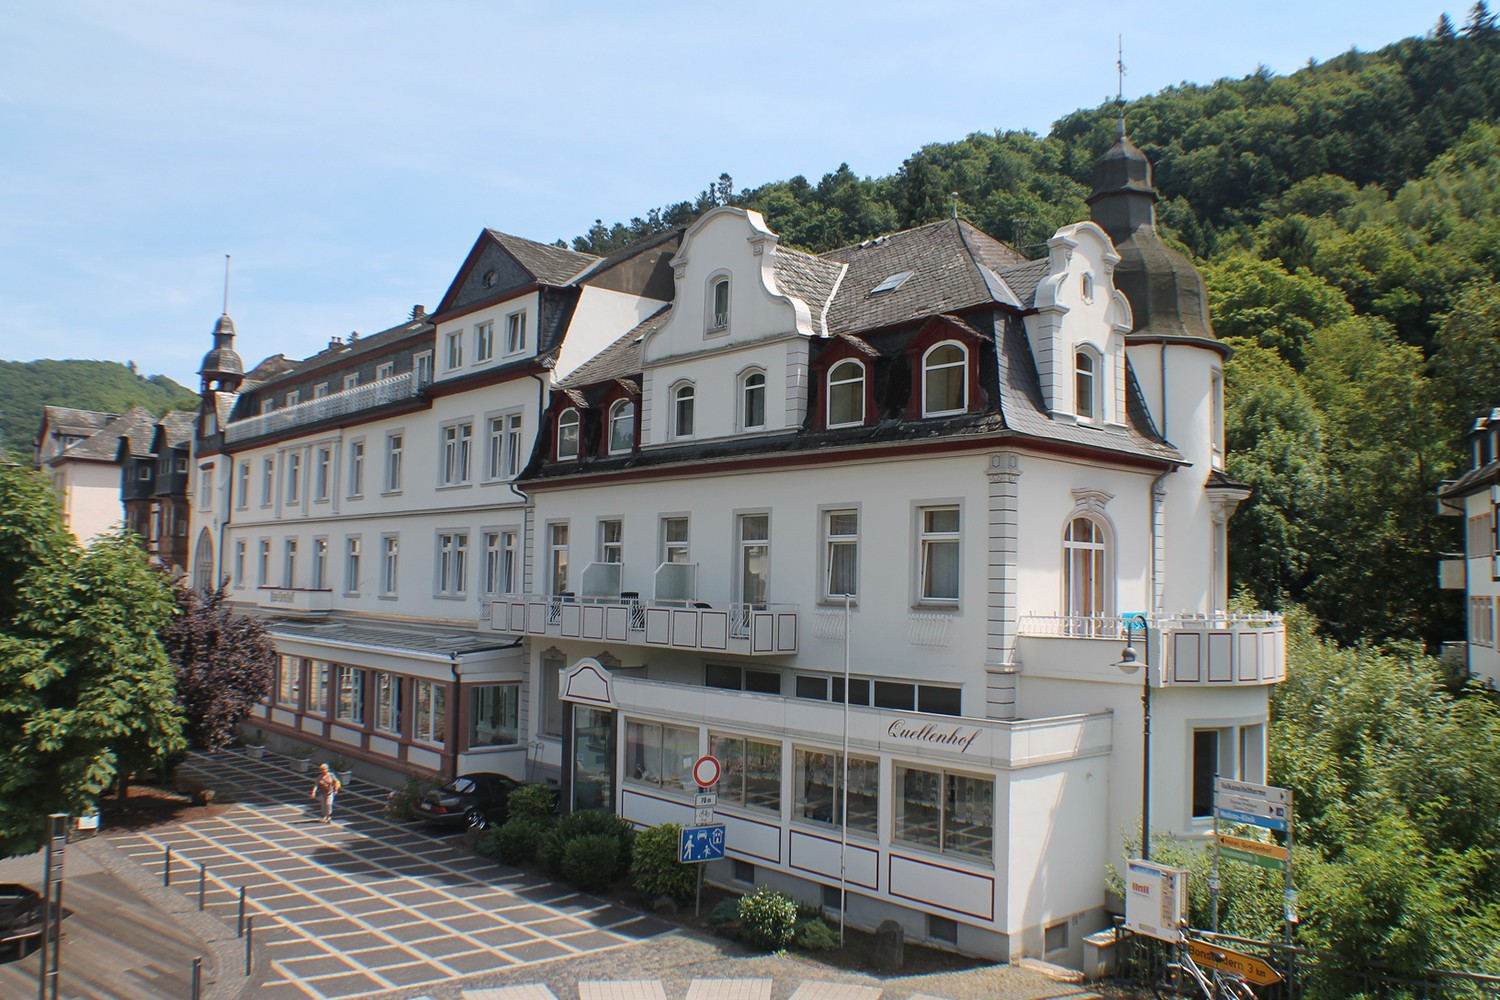 4 days on the Mosel at Kurhotel Quellenhof Bad Bertrich